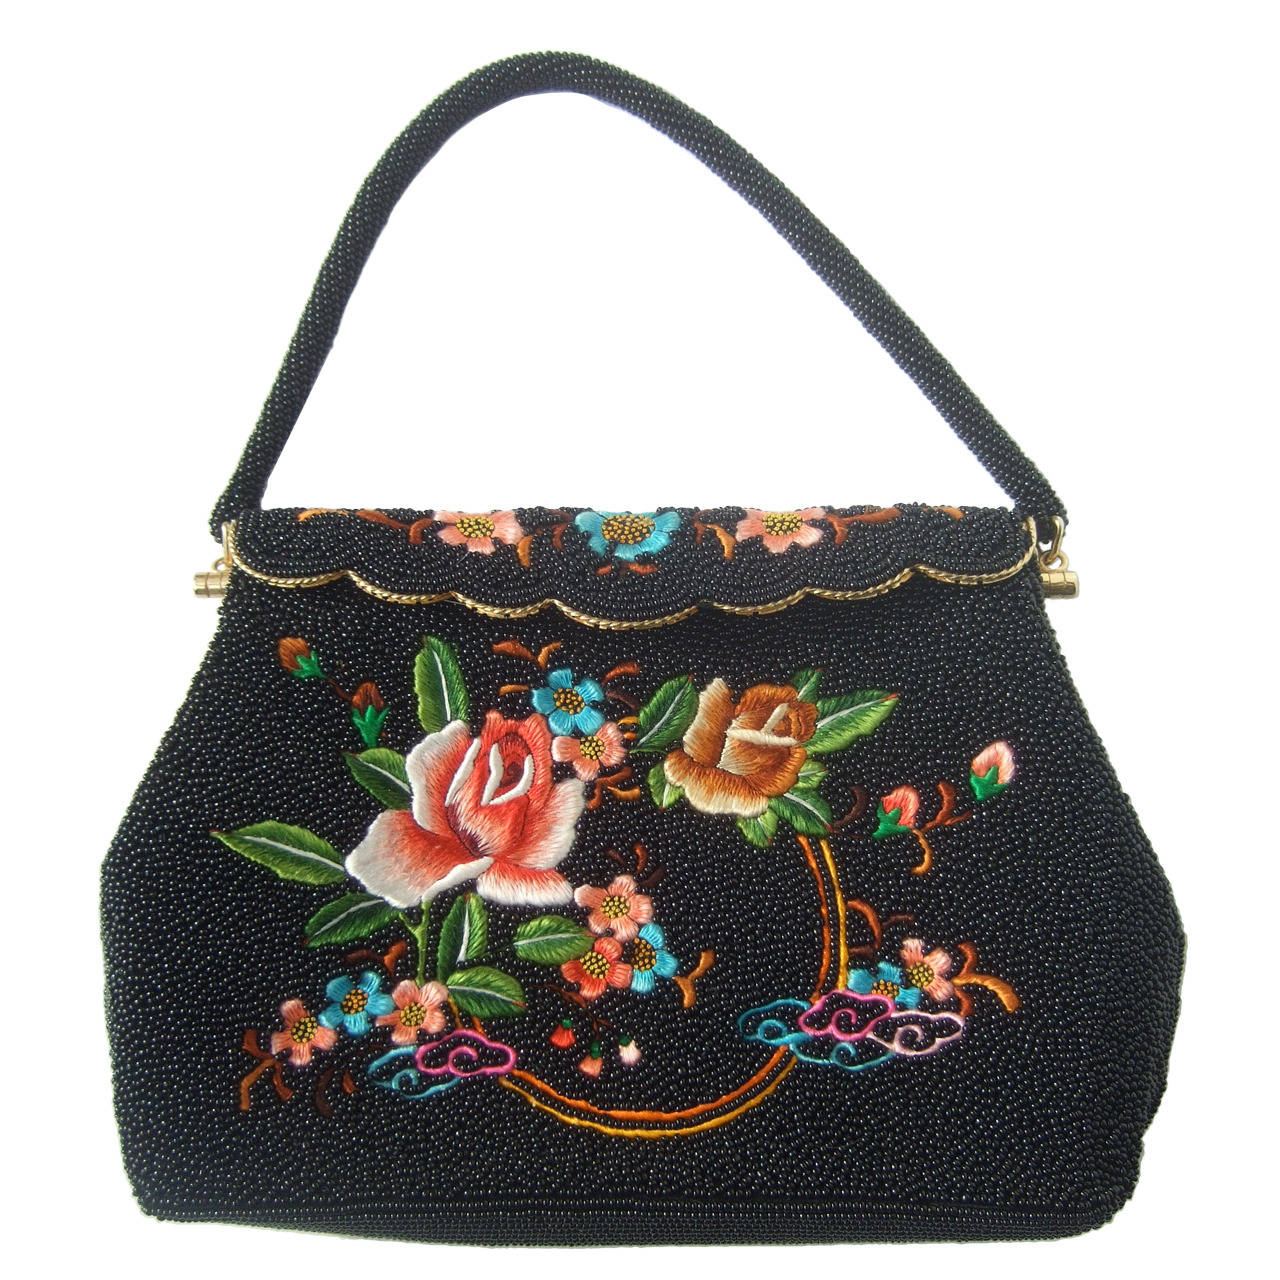 Exquiste Black Glass Beaded Embroidered Evening Bag c 1960 1